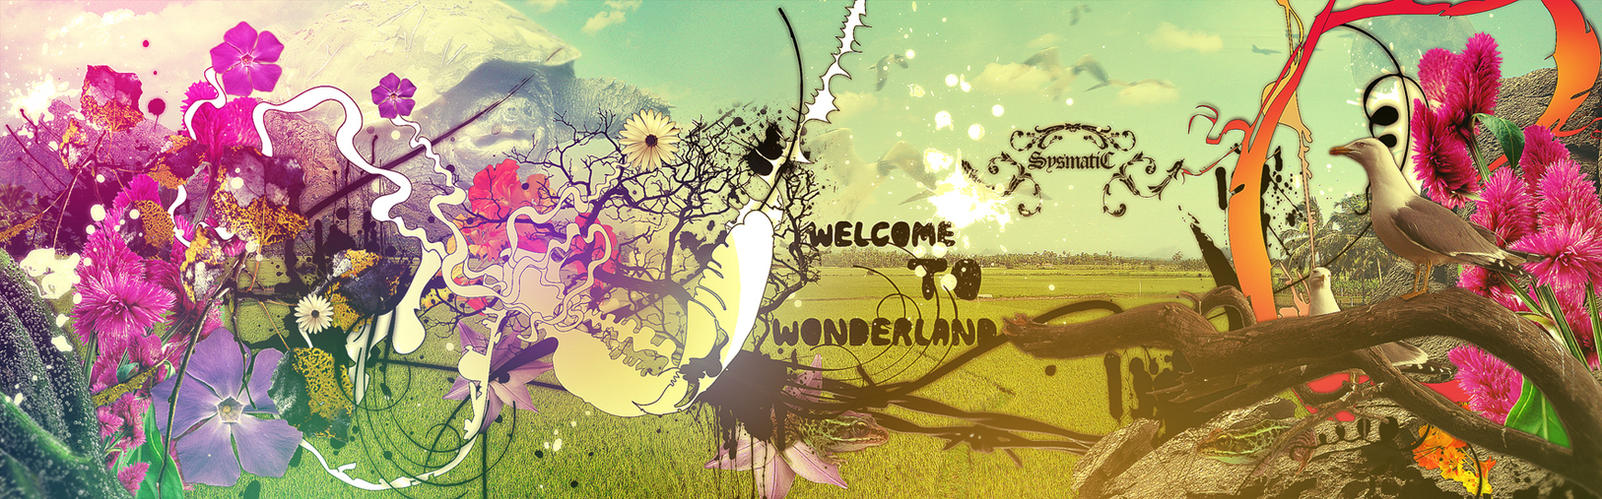 Welcome to Wonderland by visuasys